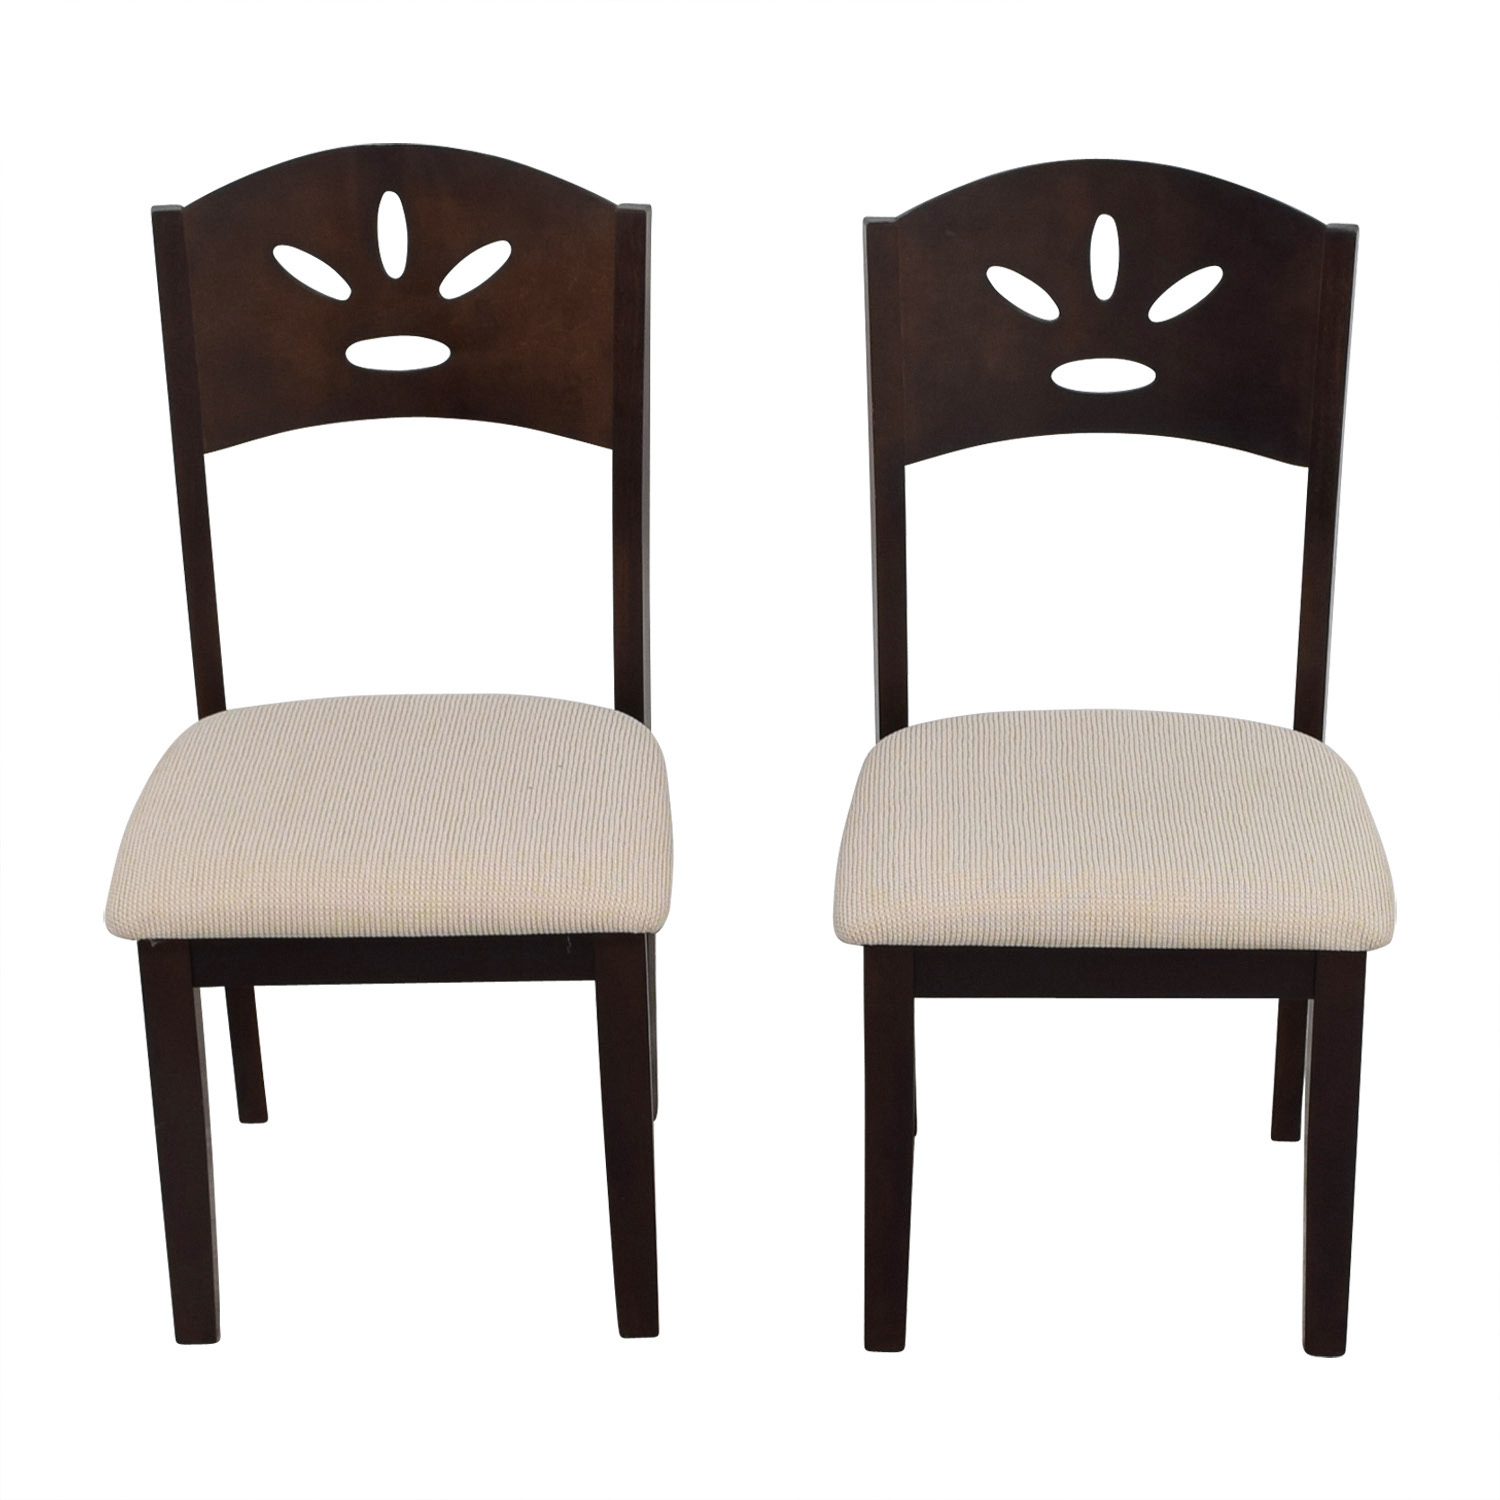 Off White and Wood Dining Chairs for sale